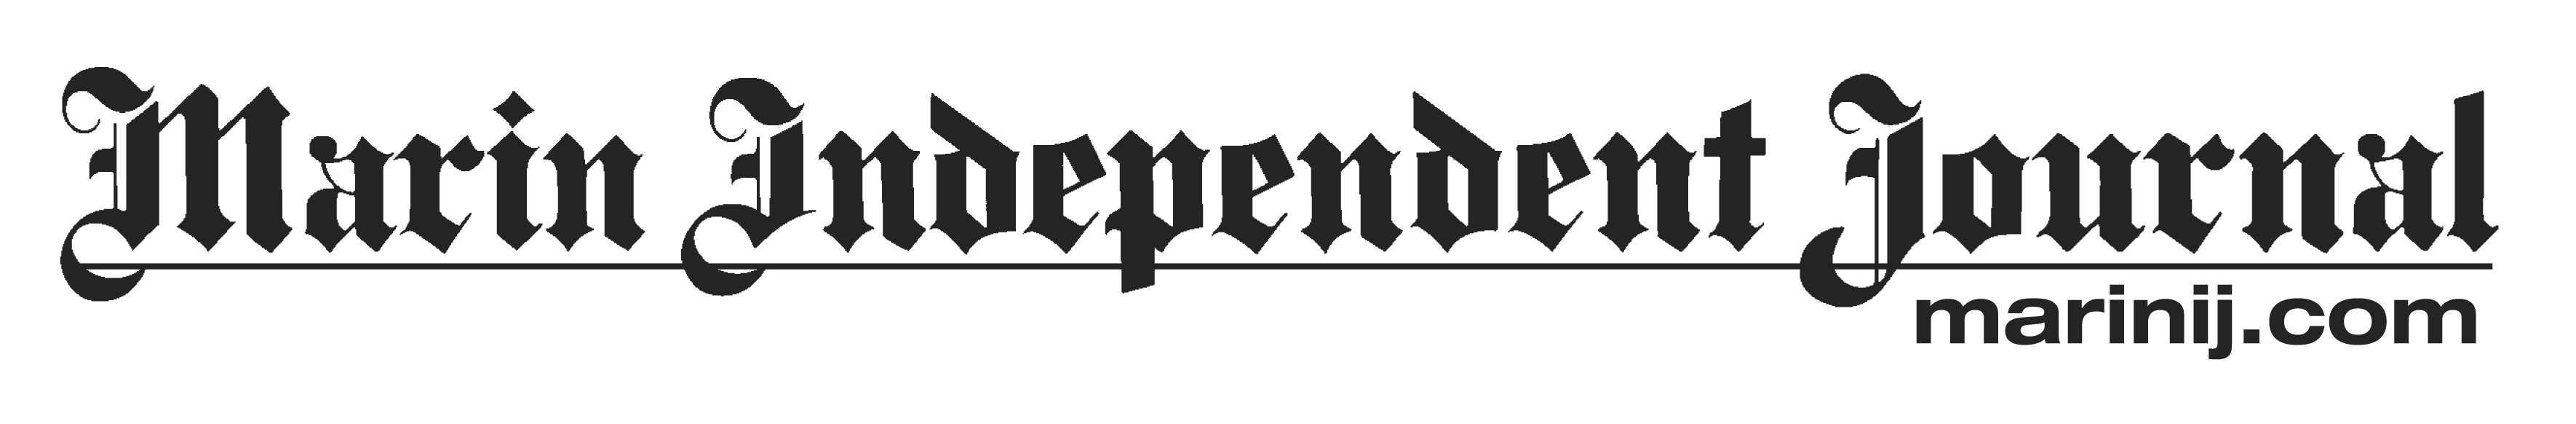 Marin Independant Journal Logo